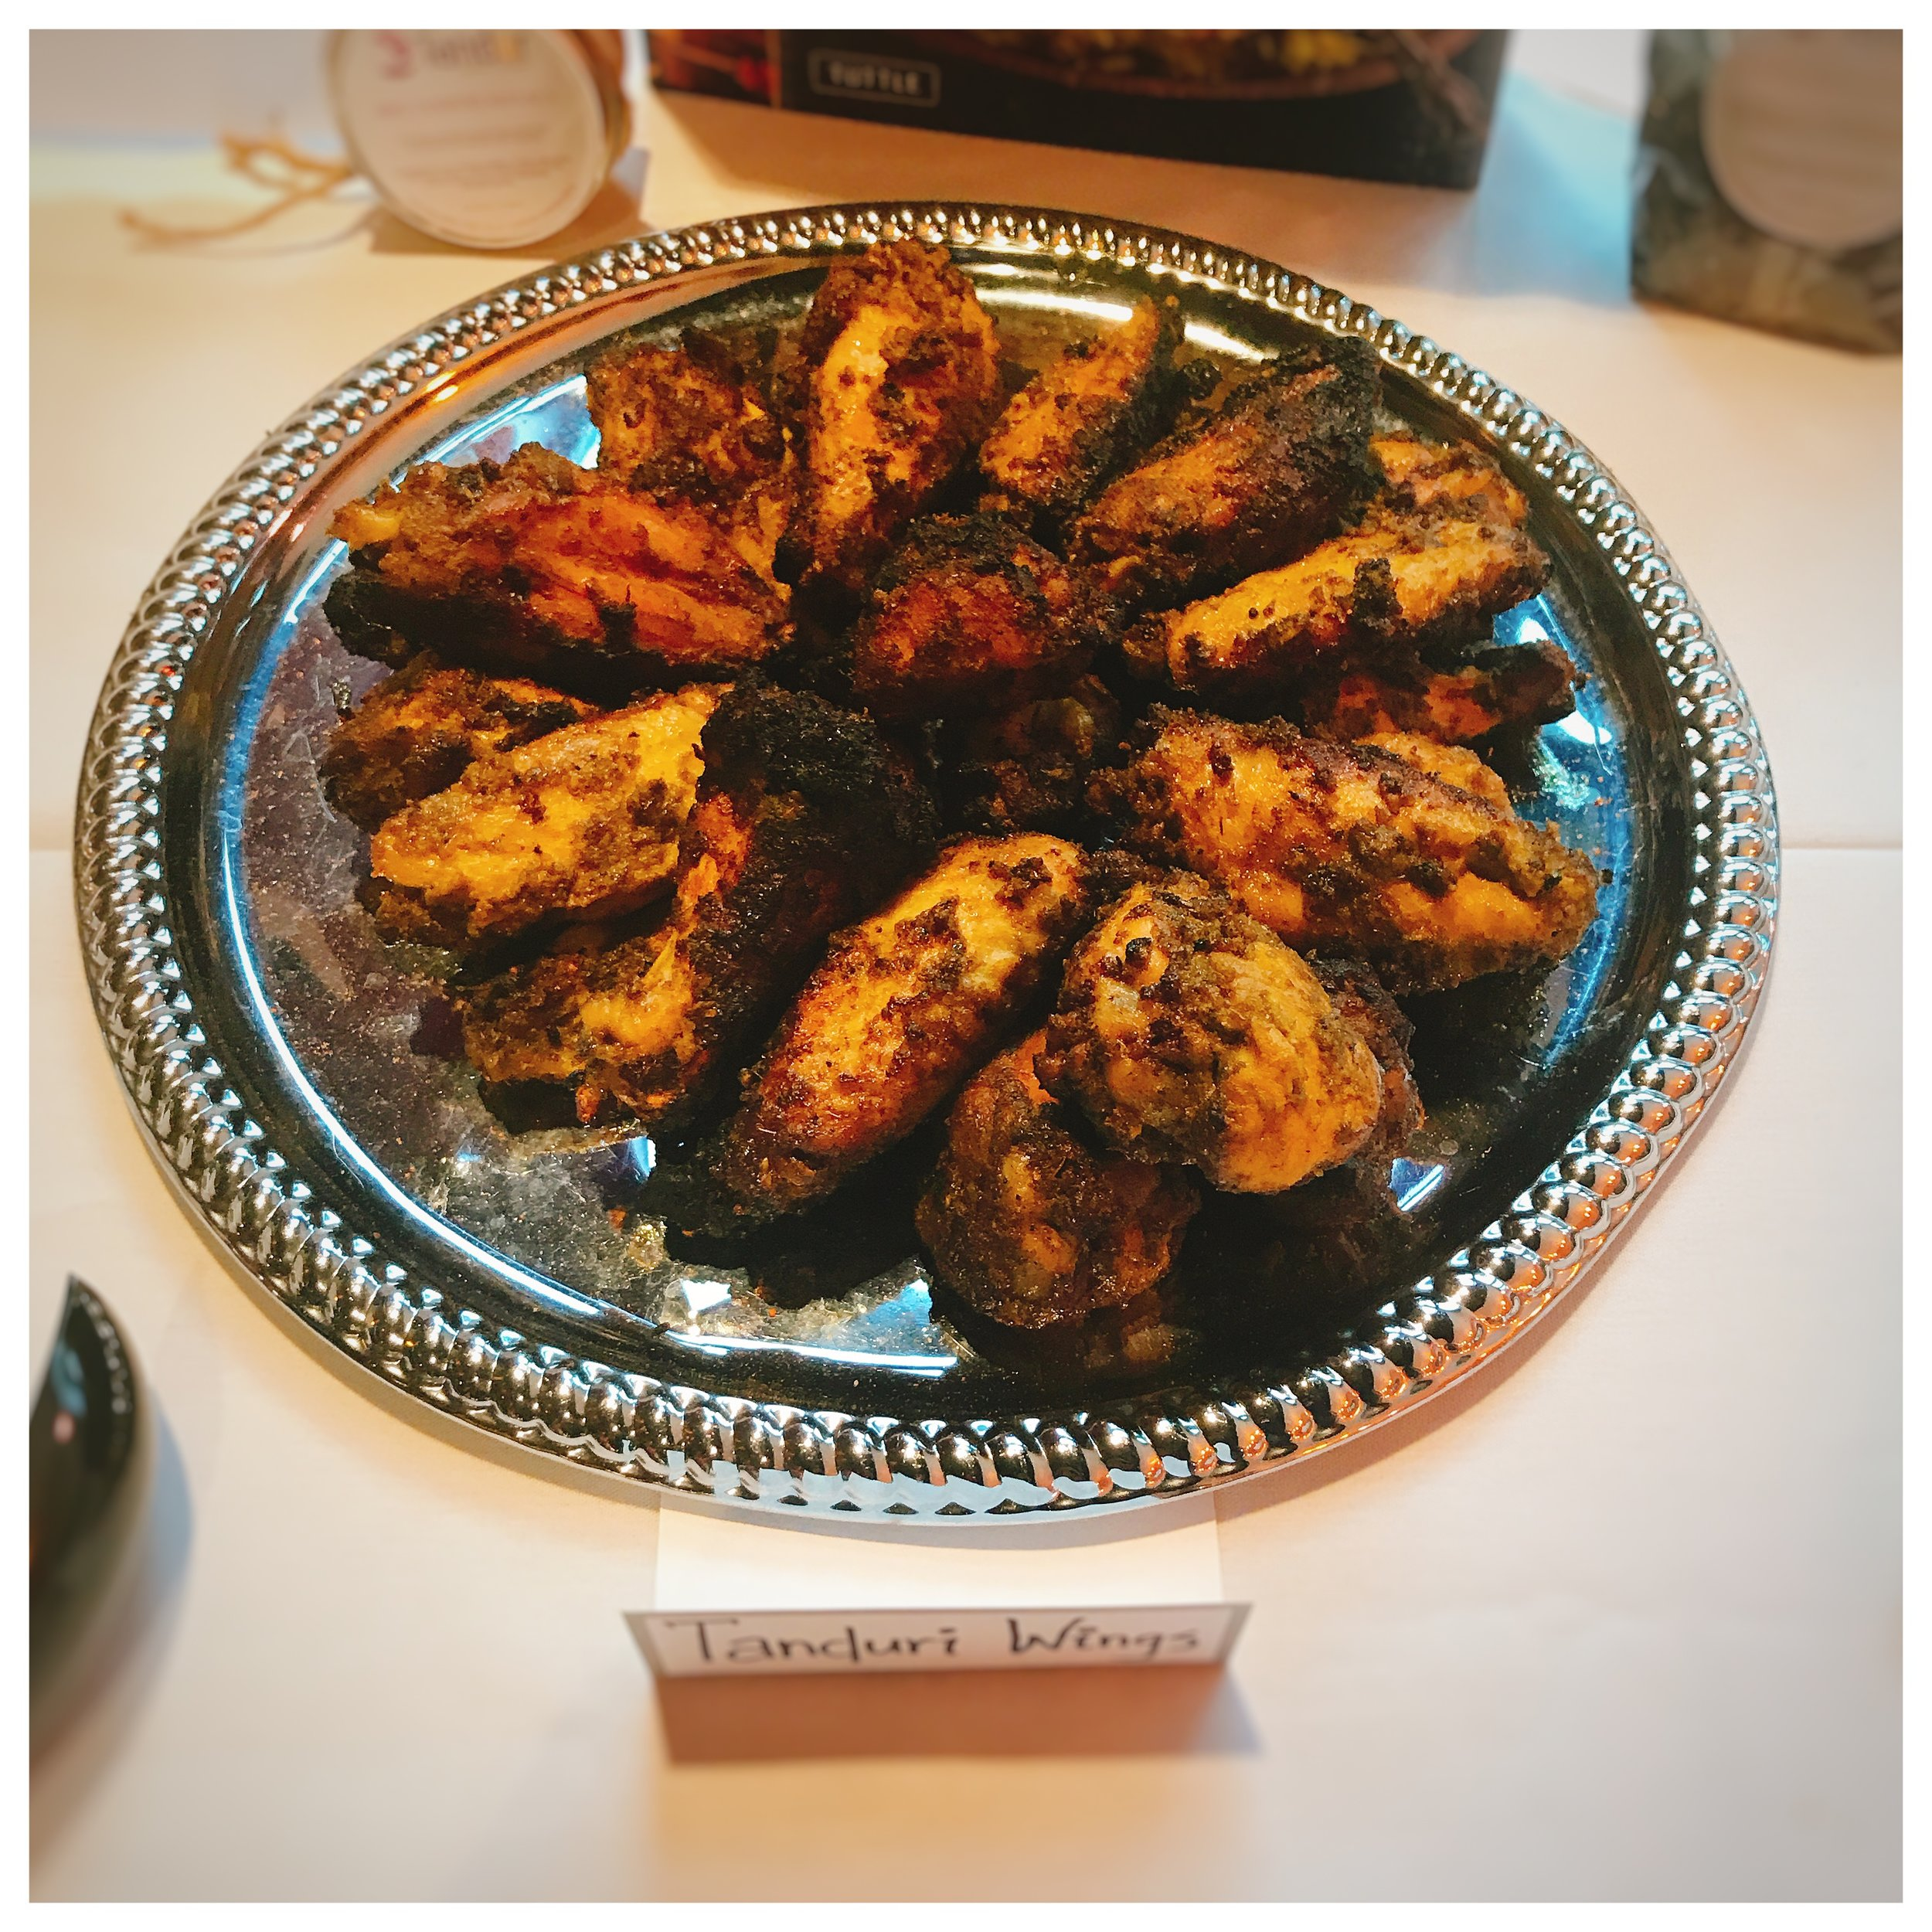 Tanduri Baked Wings - These wings were spot on in my opinion. They are cooked in the Tandoor Oven so you get the perfect char and smokiness that one could only hope for. You can definitely taste the authentic seasonings prepared in house on full display here. The wings are pricey, but they are large and prepared well. For those that don't like jumbo sized wings, they may not be for you - so just pass them my way please!